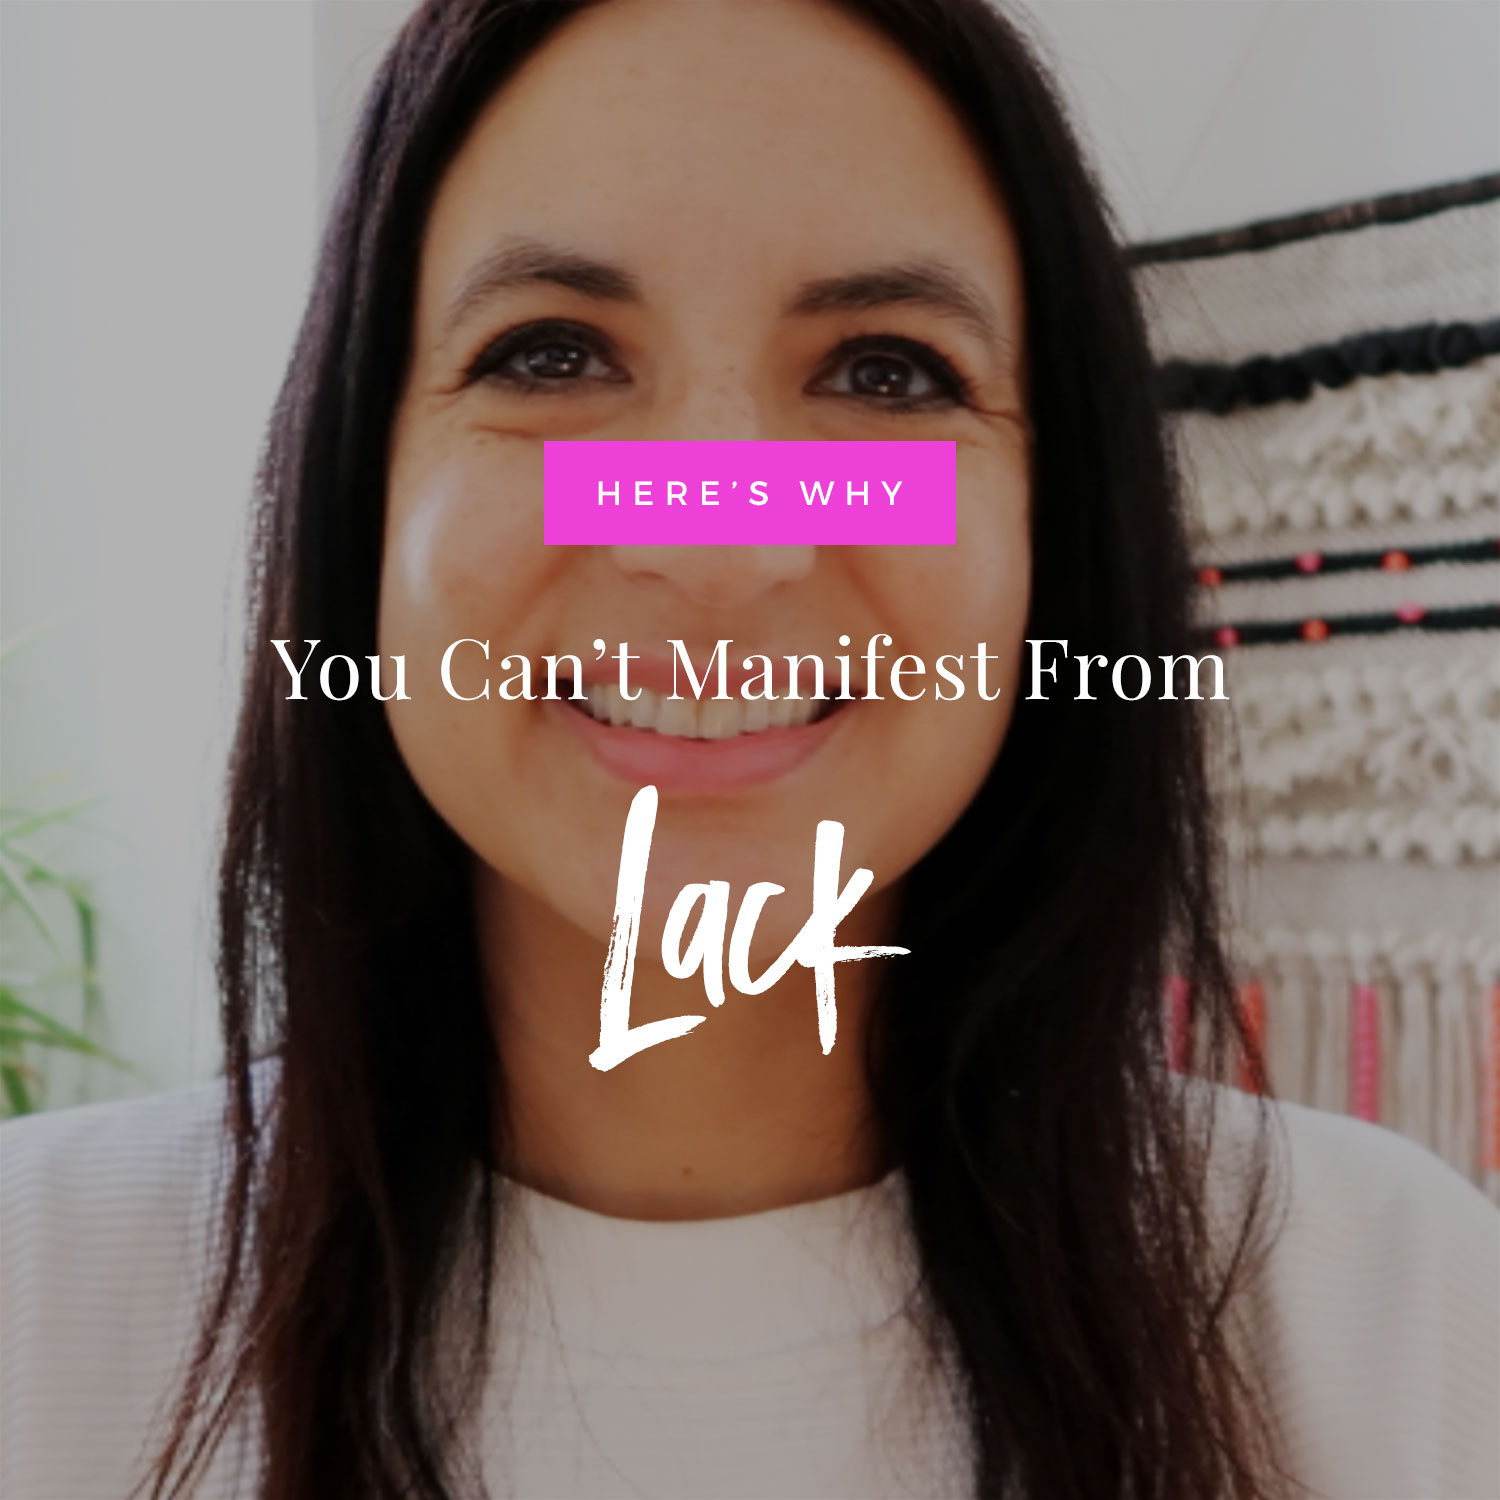 Why You Can't Manifest From Lack